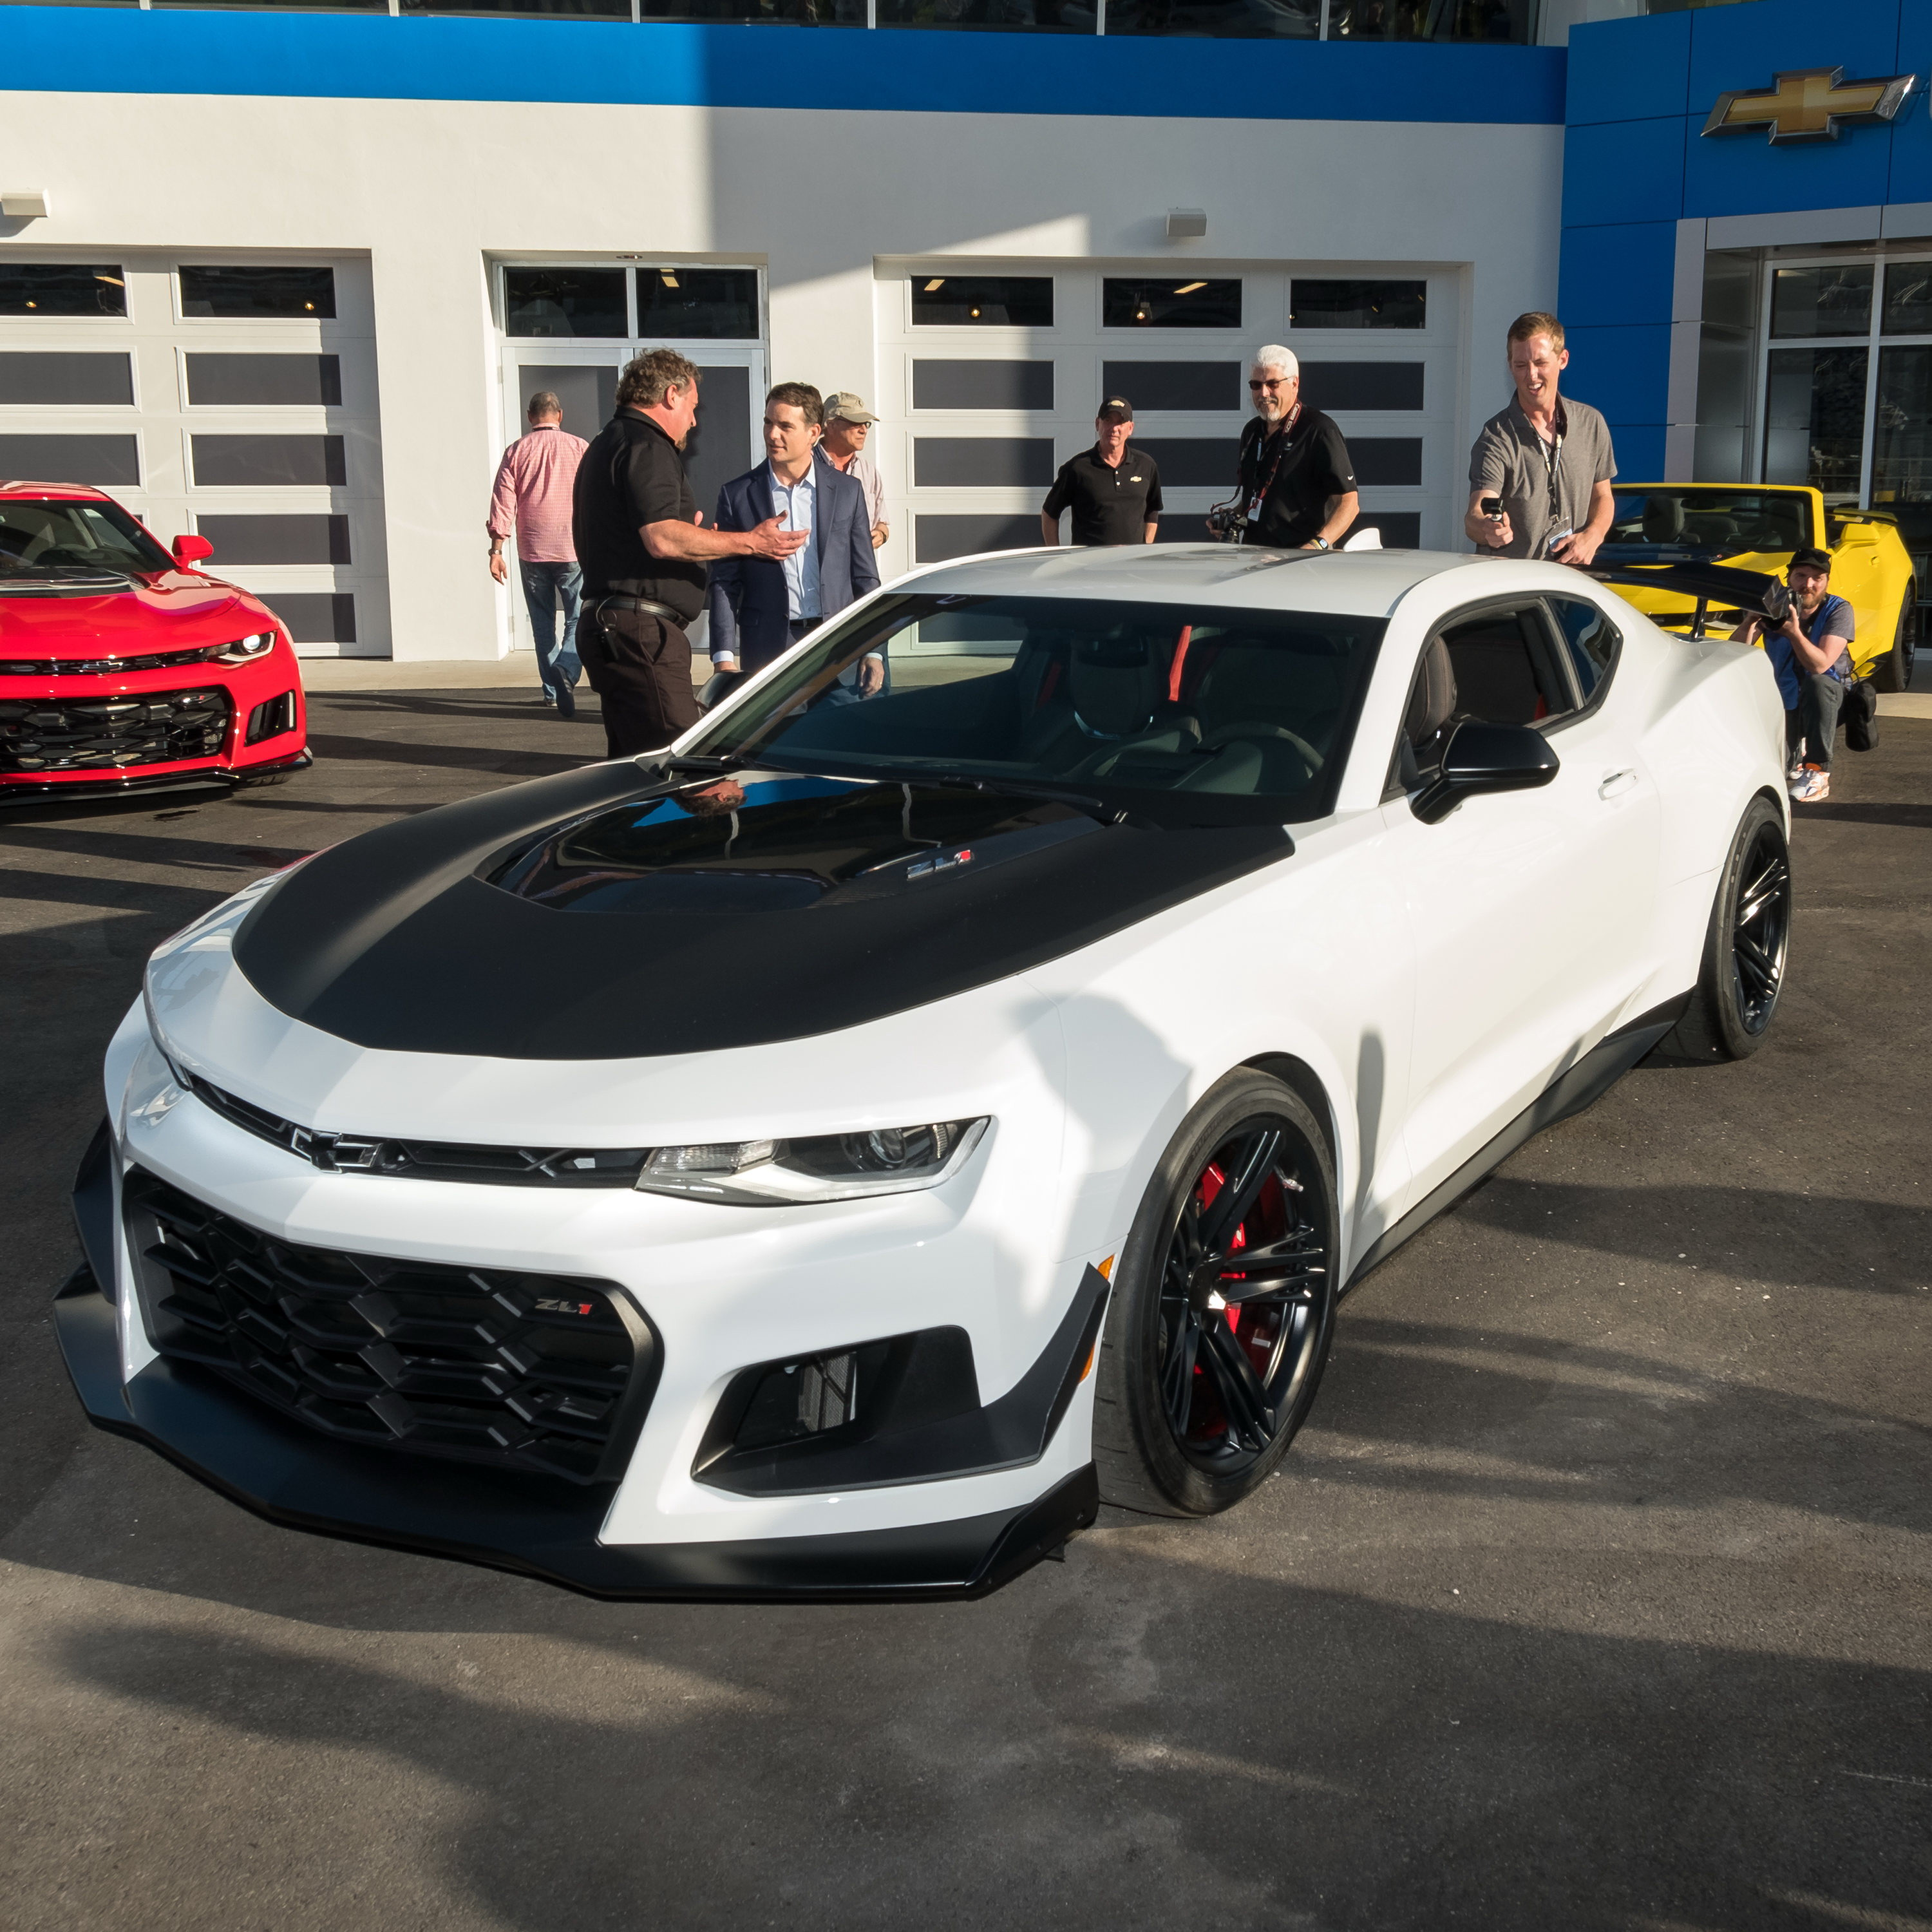 2018 Chevrolet Camaro Zl1 1le Gallery 706873 Top Speed